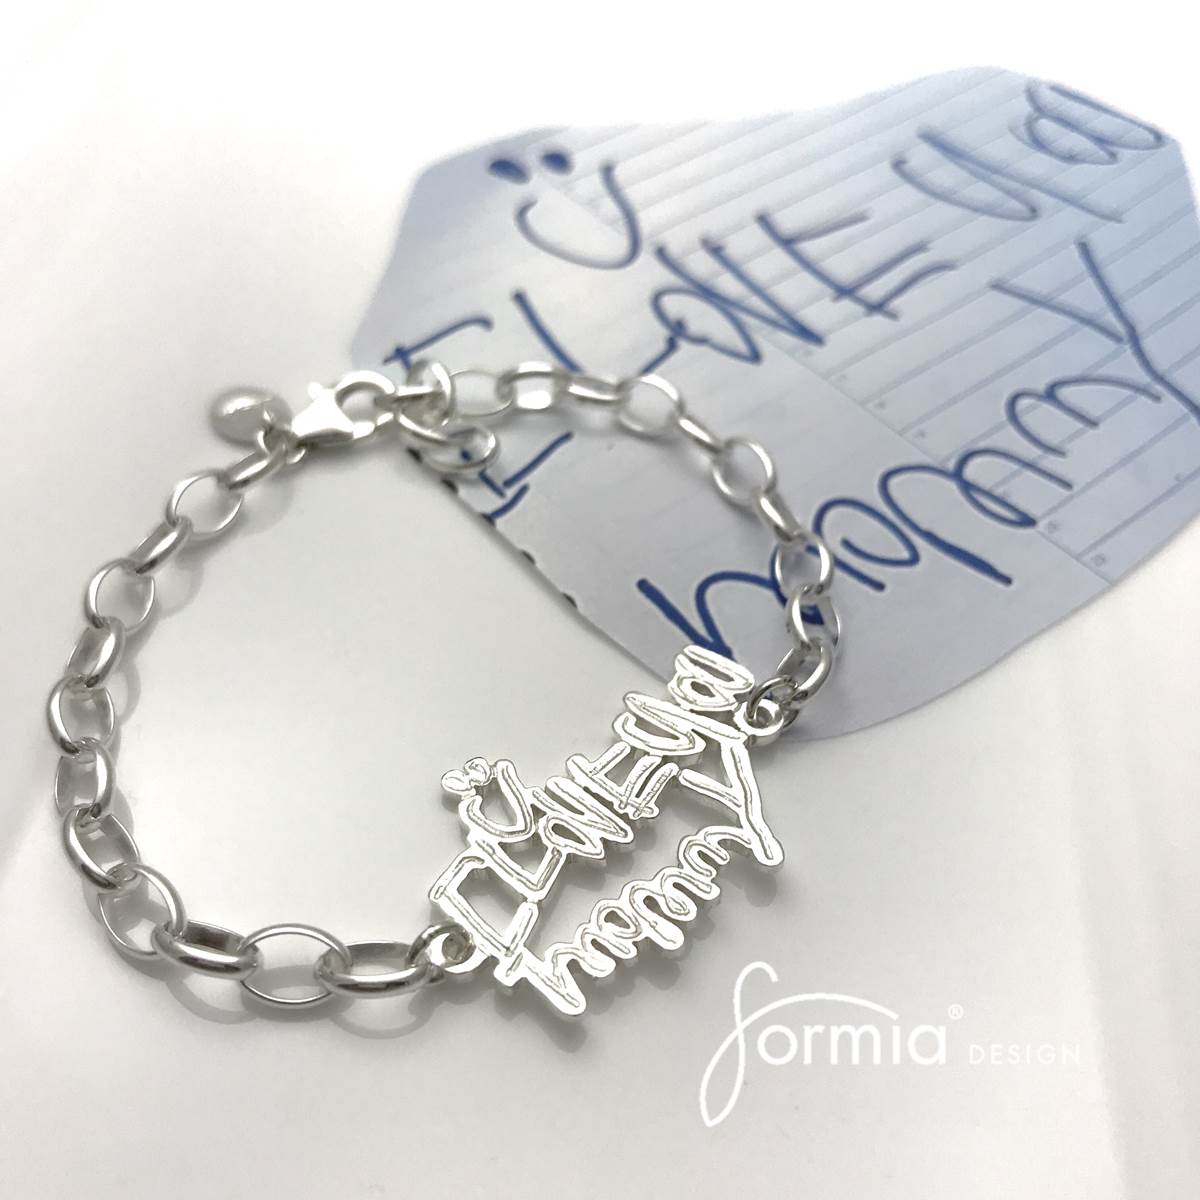 love you mommy sports bracelet with smiley face, personally wirtten note as jewelry Valentine's day gifts